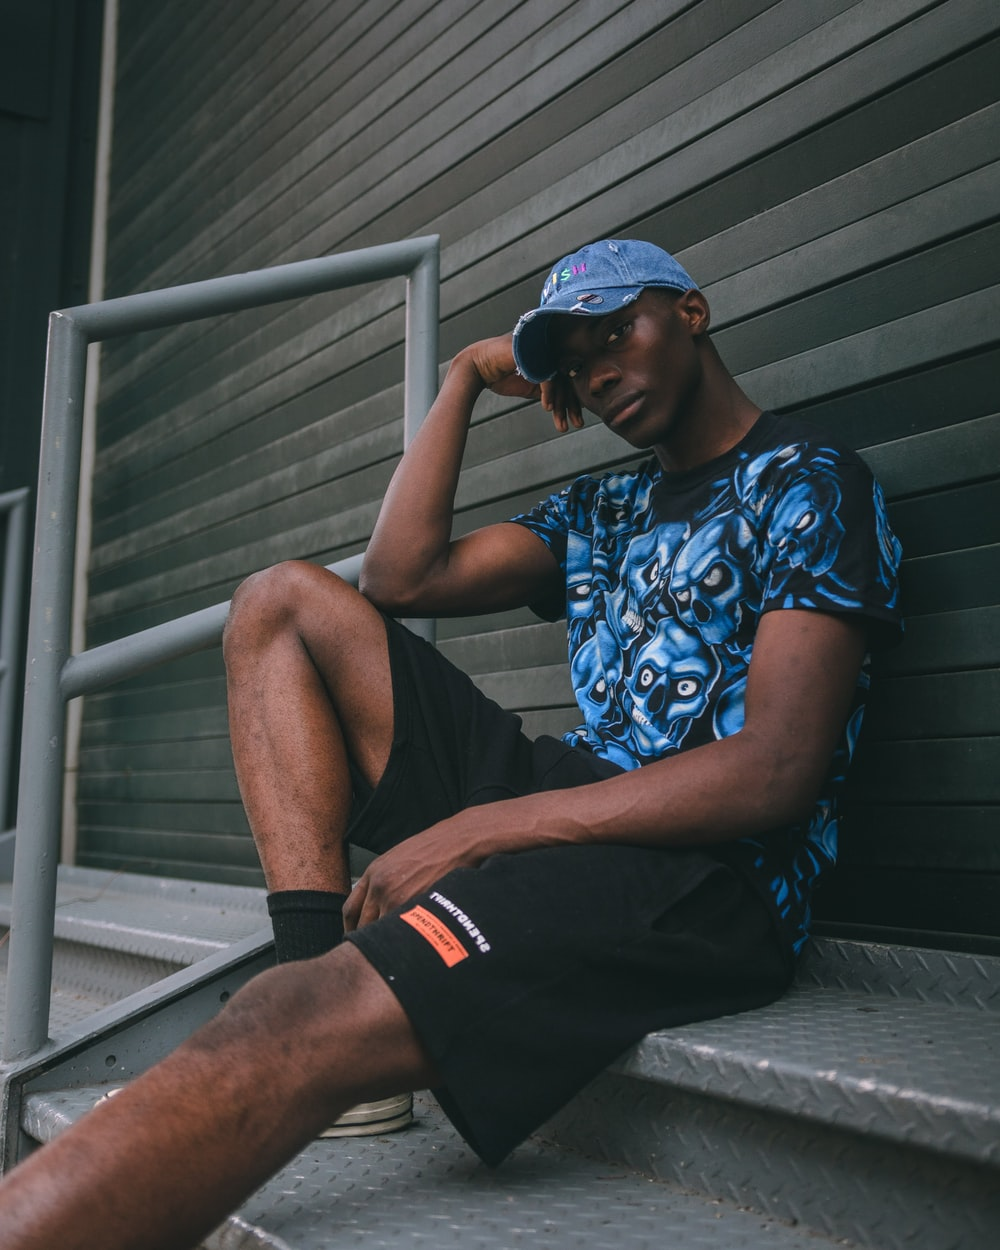 man in blue and white floral shirt and black shorts sitting on gray wooden stairs